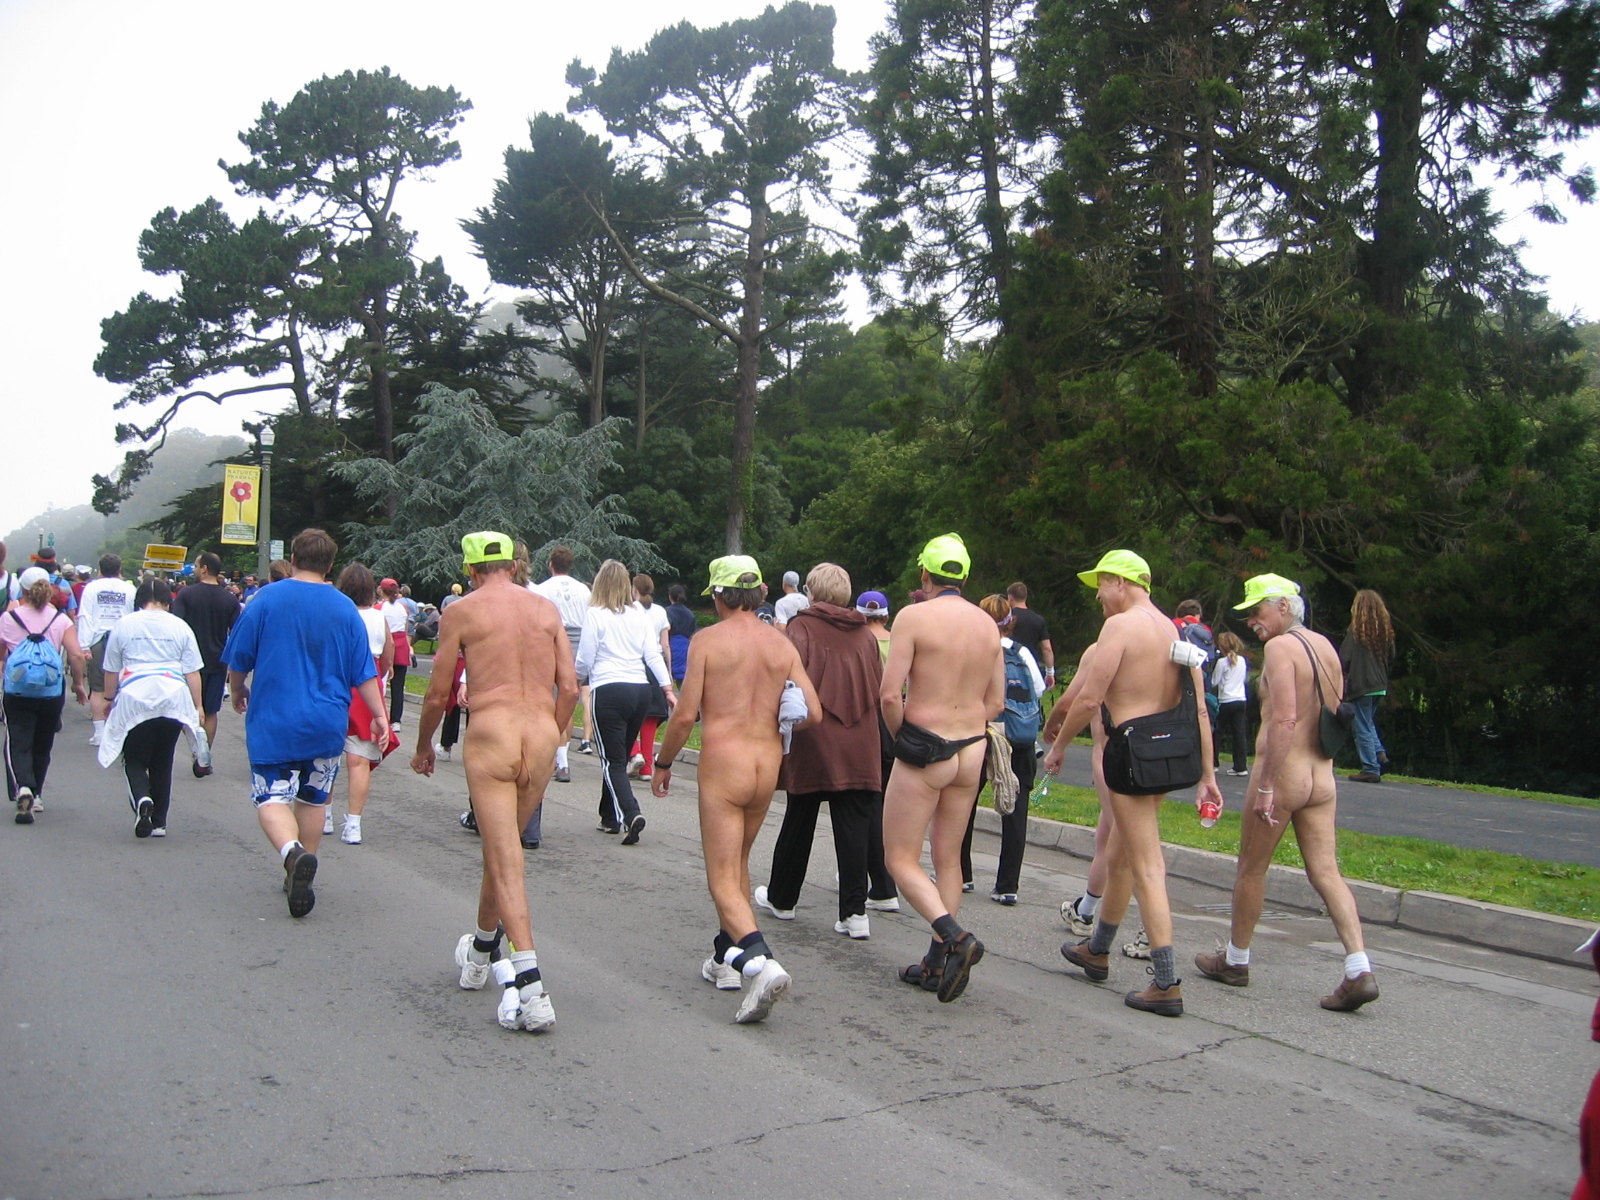 Bay to breakers naked